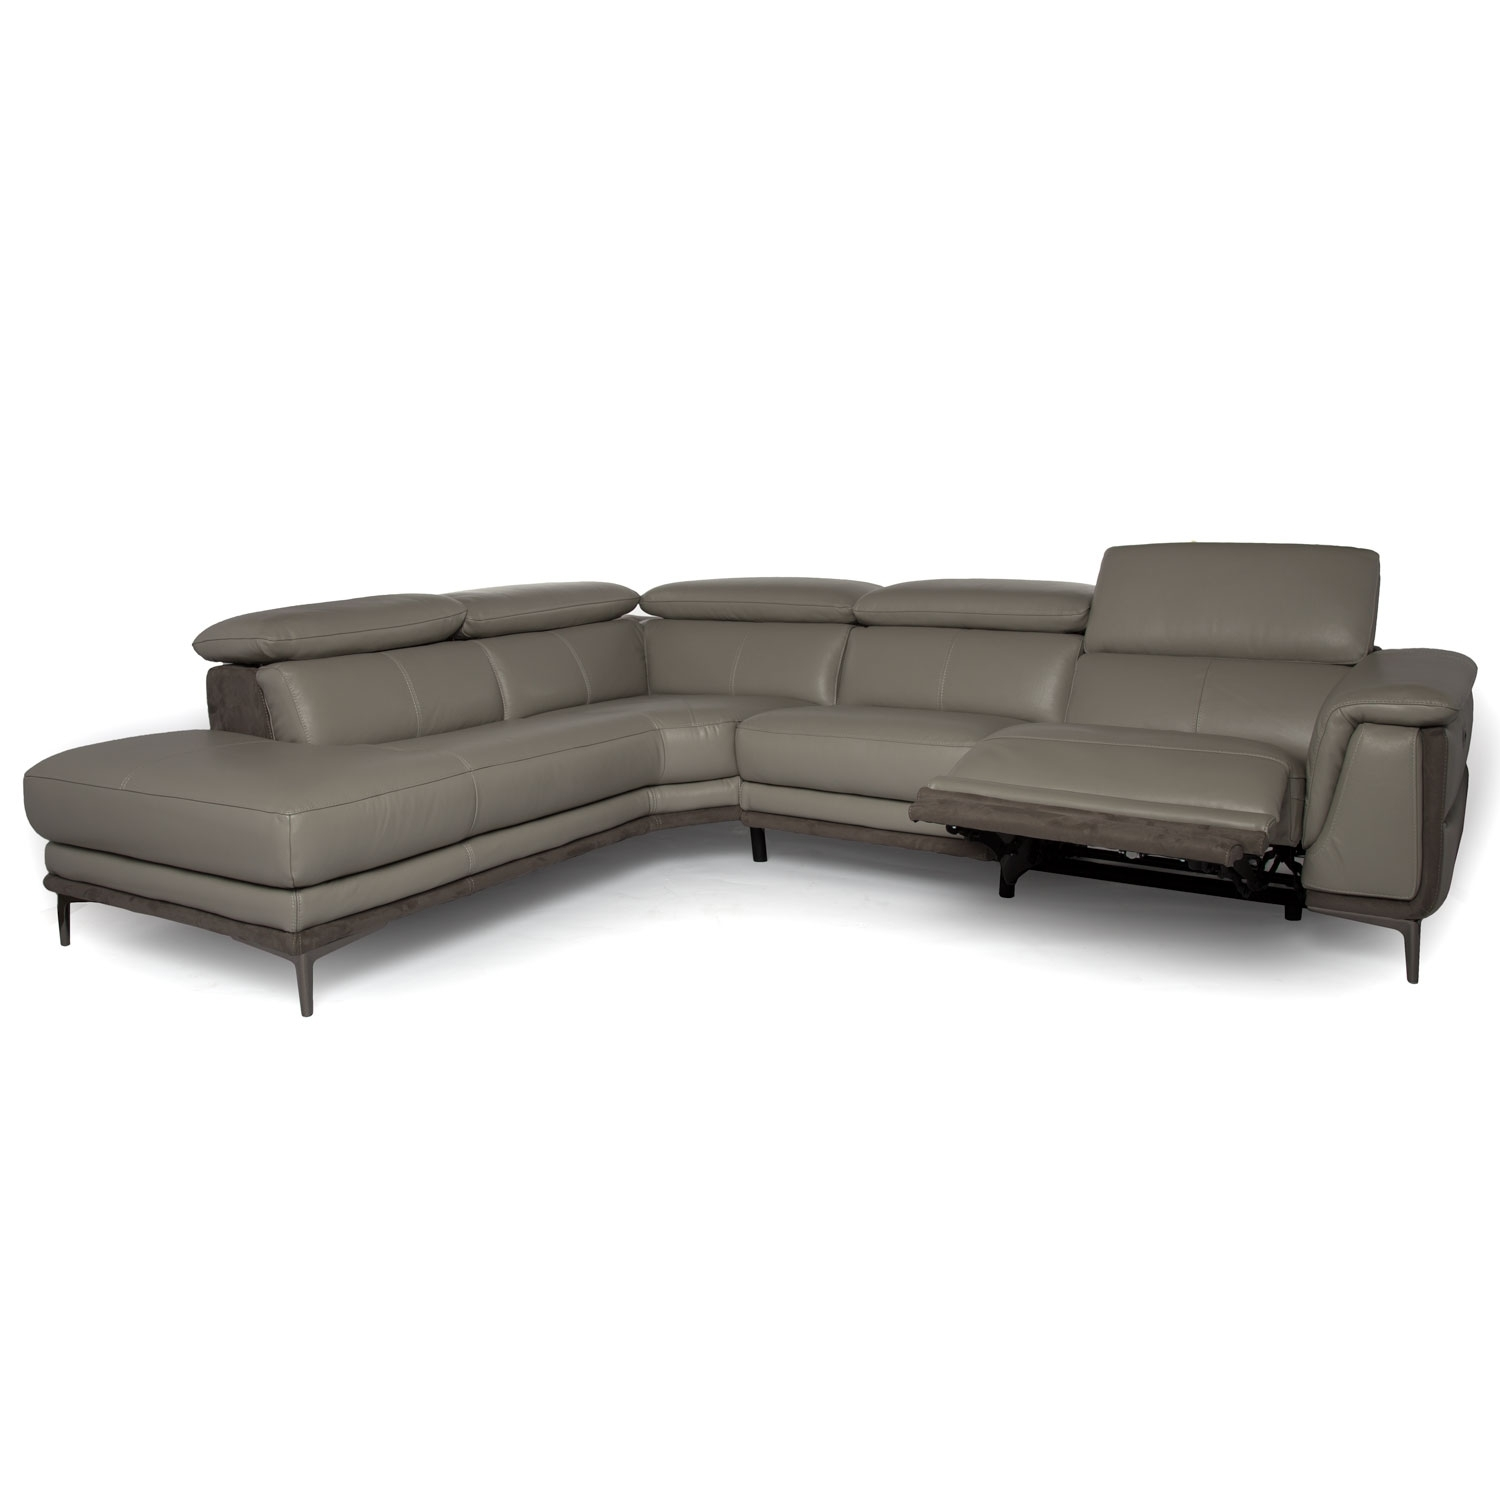 Grey Reclining Sectional - Tidex inside Calder Grey 6 Piece Manual Reclining Sectionals (Image 18 of 30)